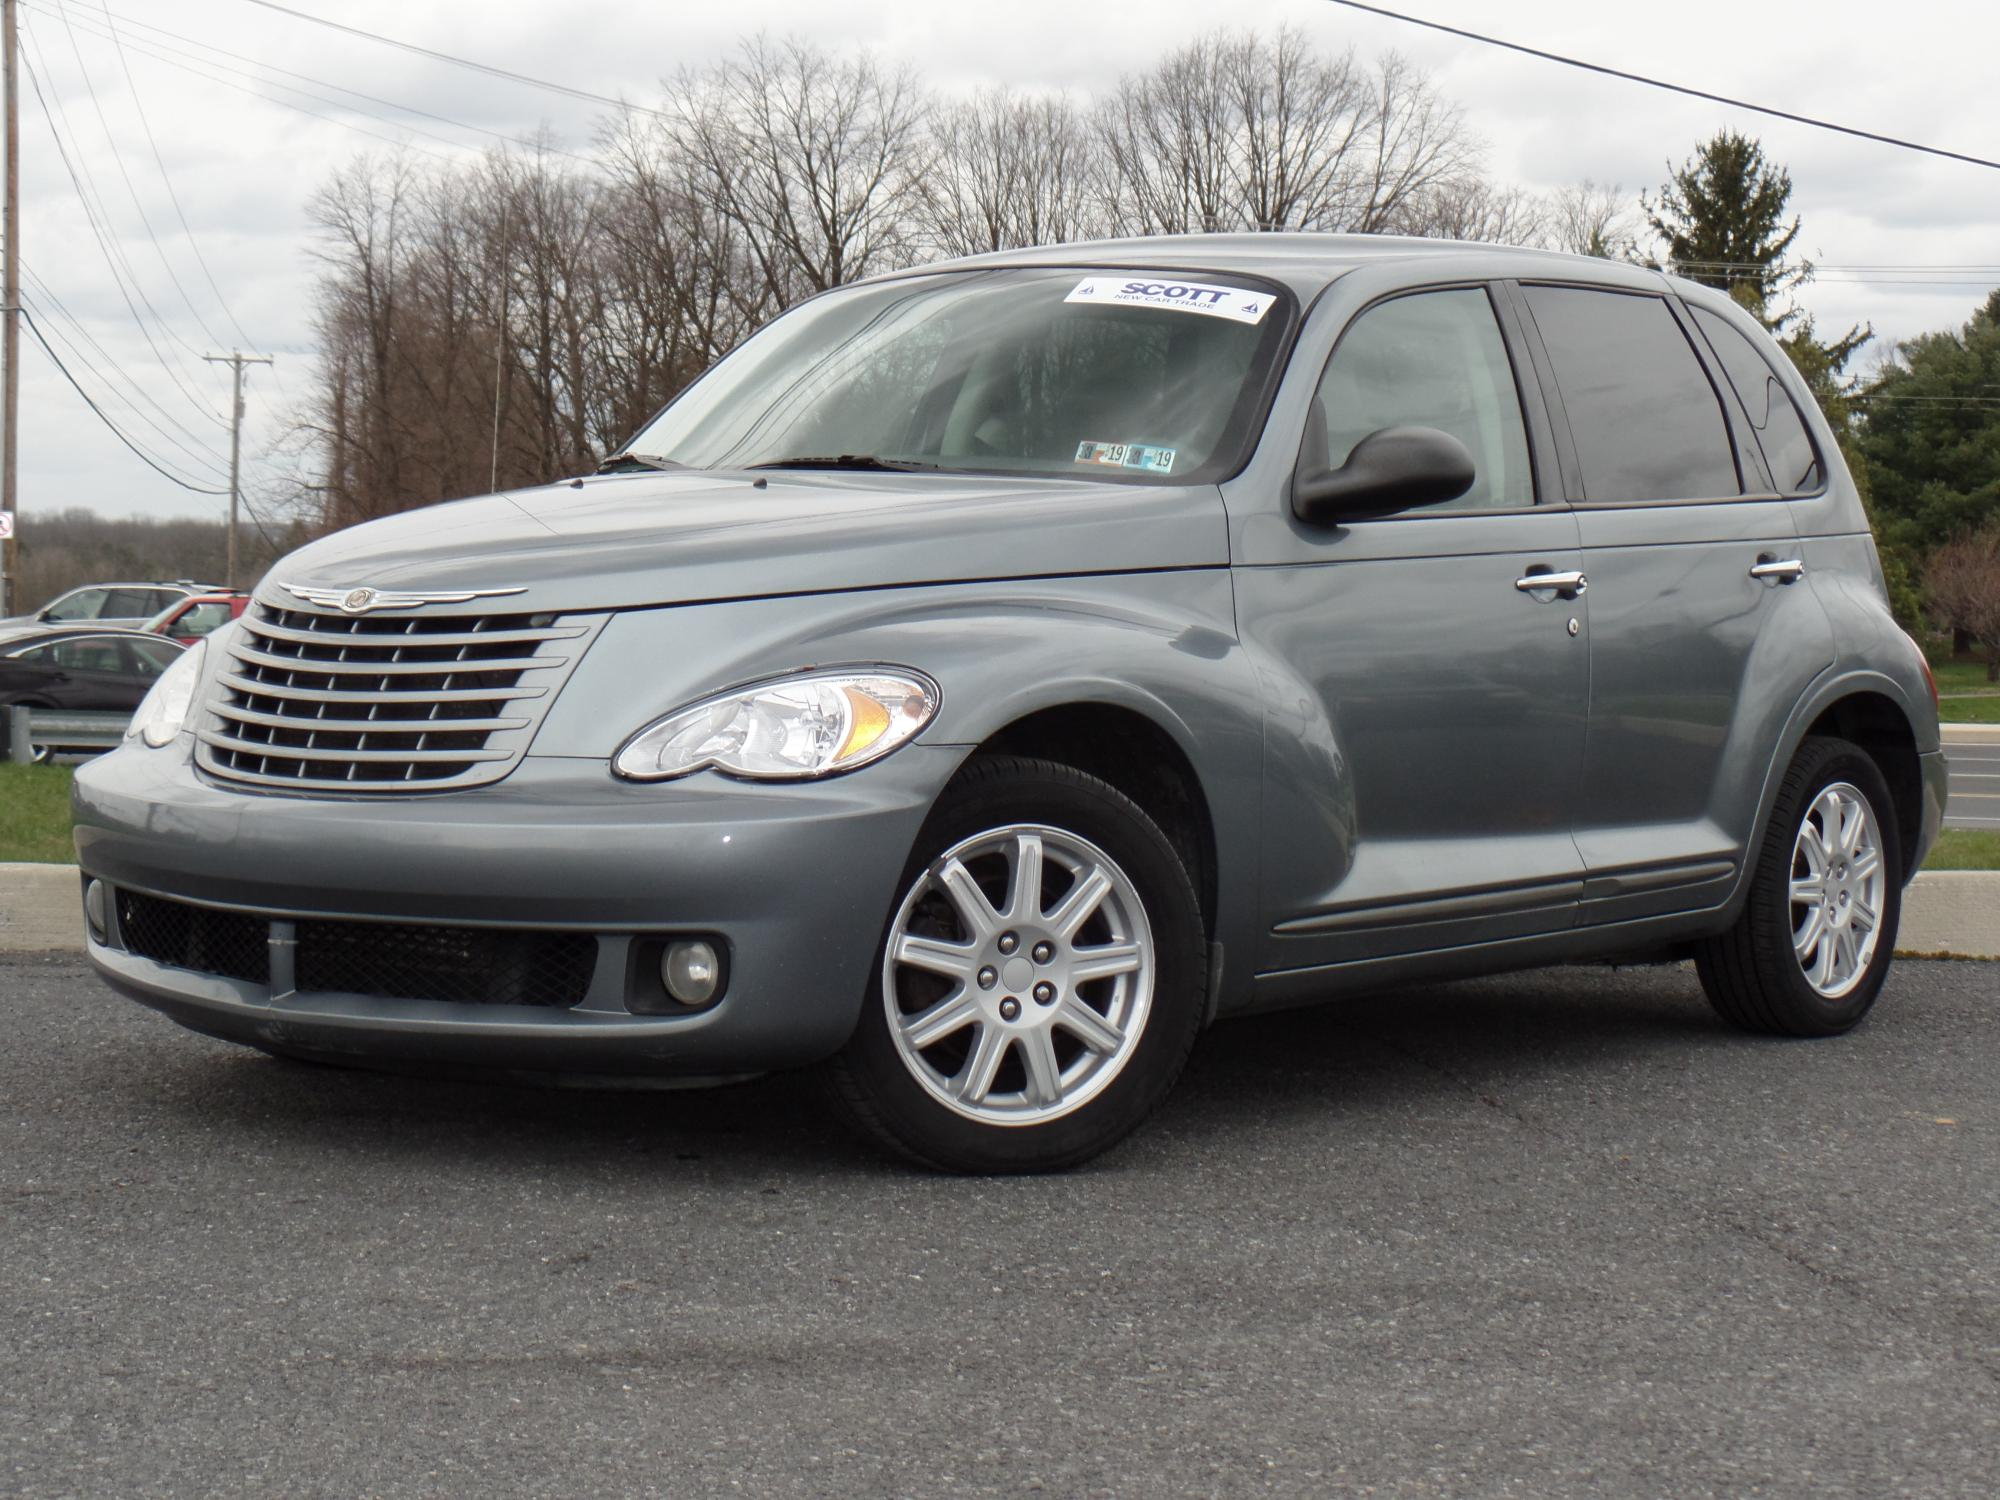 4-24-2018_2008_Chrysler_PT_Cruiser_187455__1_.JPG